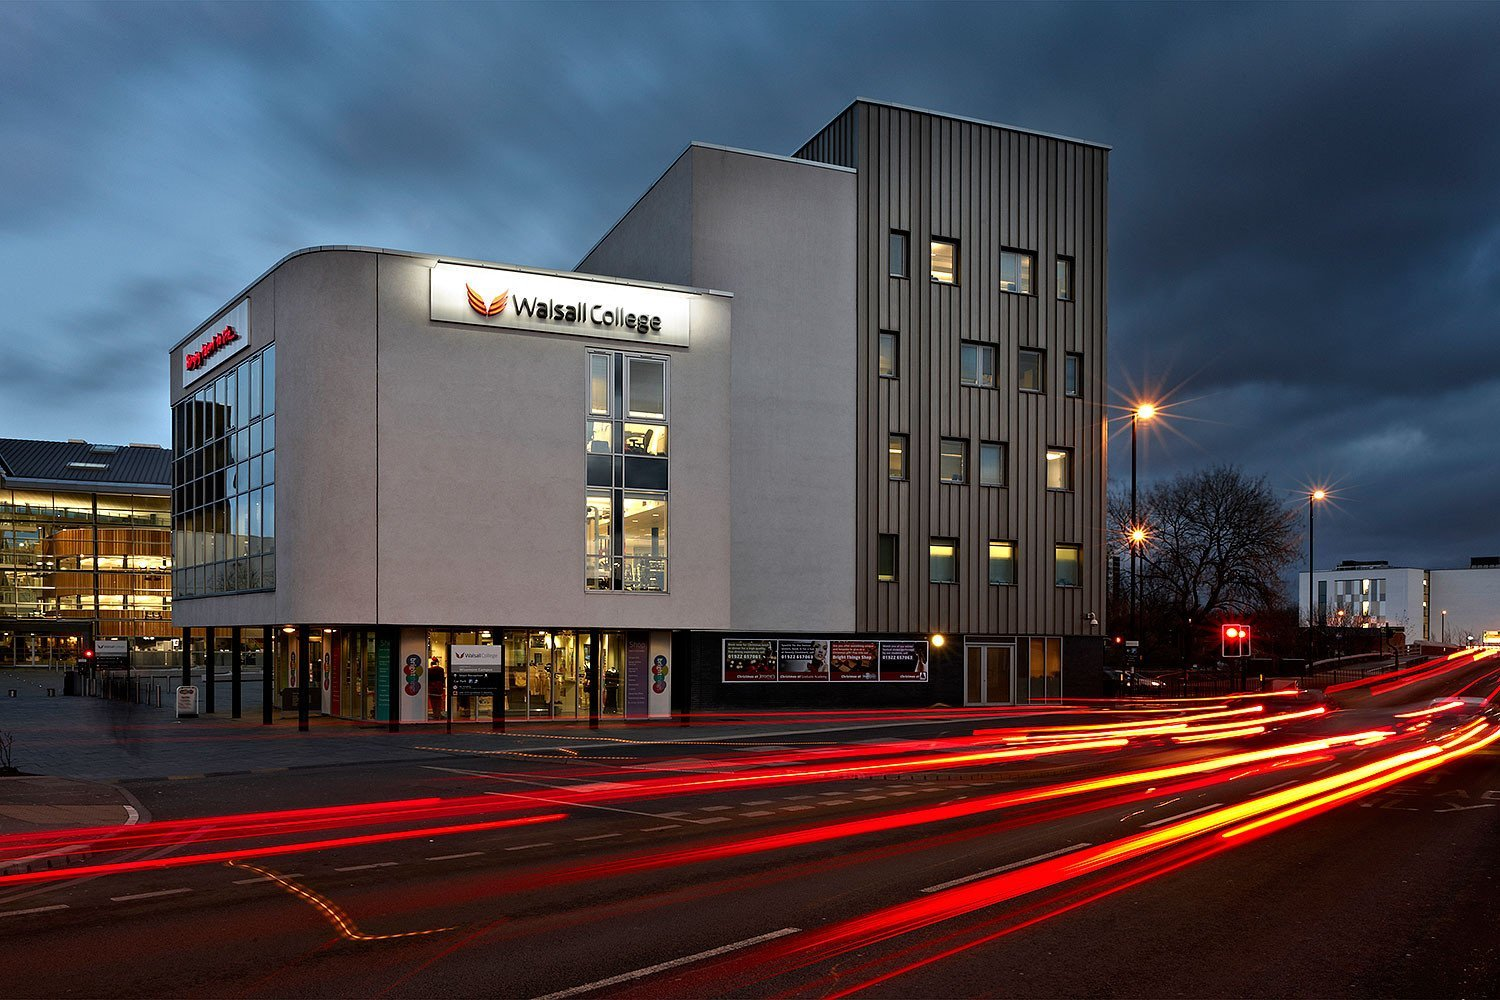 Exterior of Walsall College